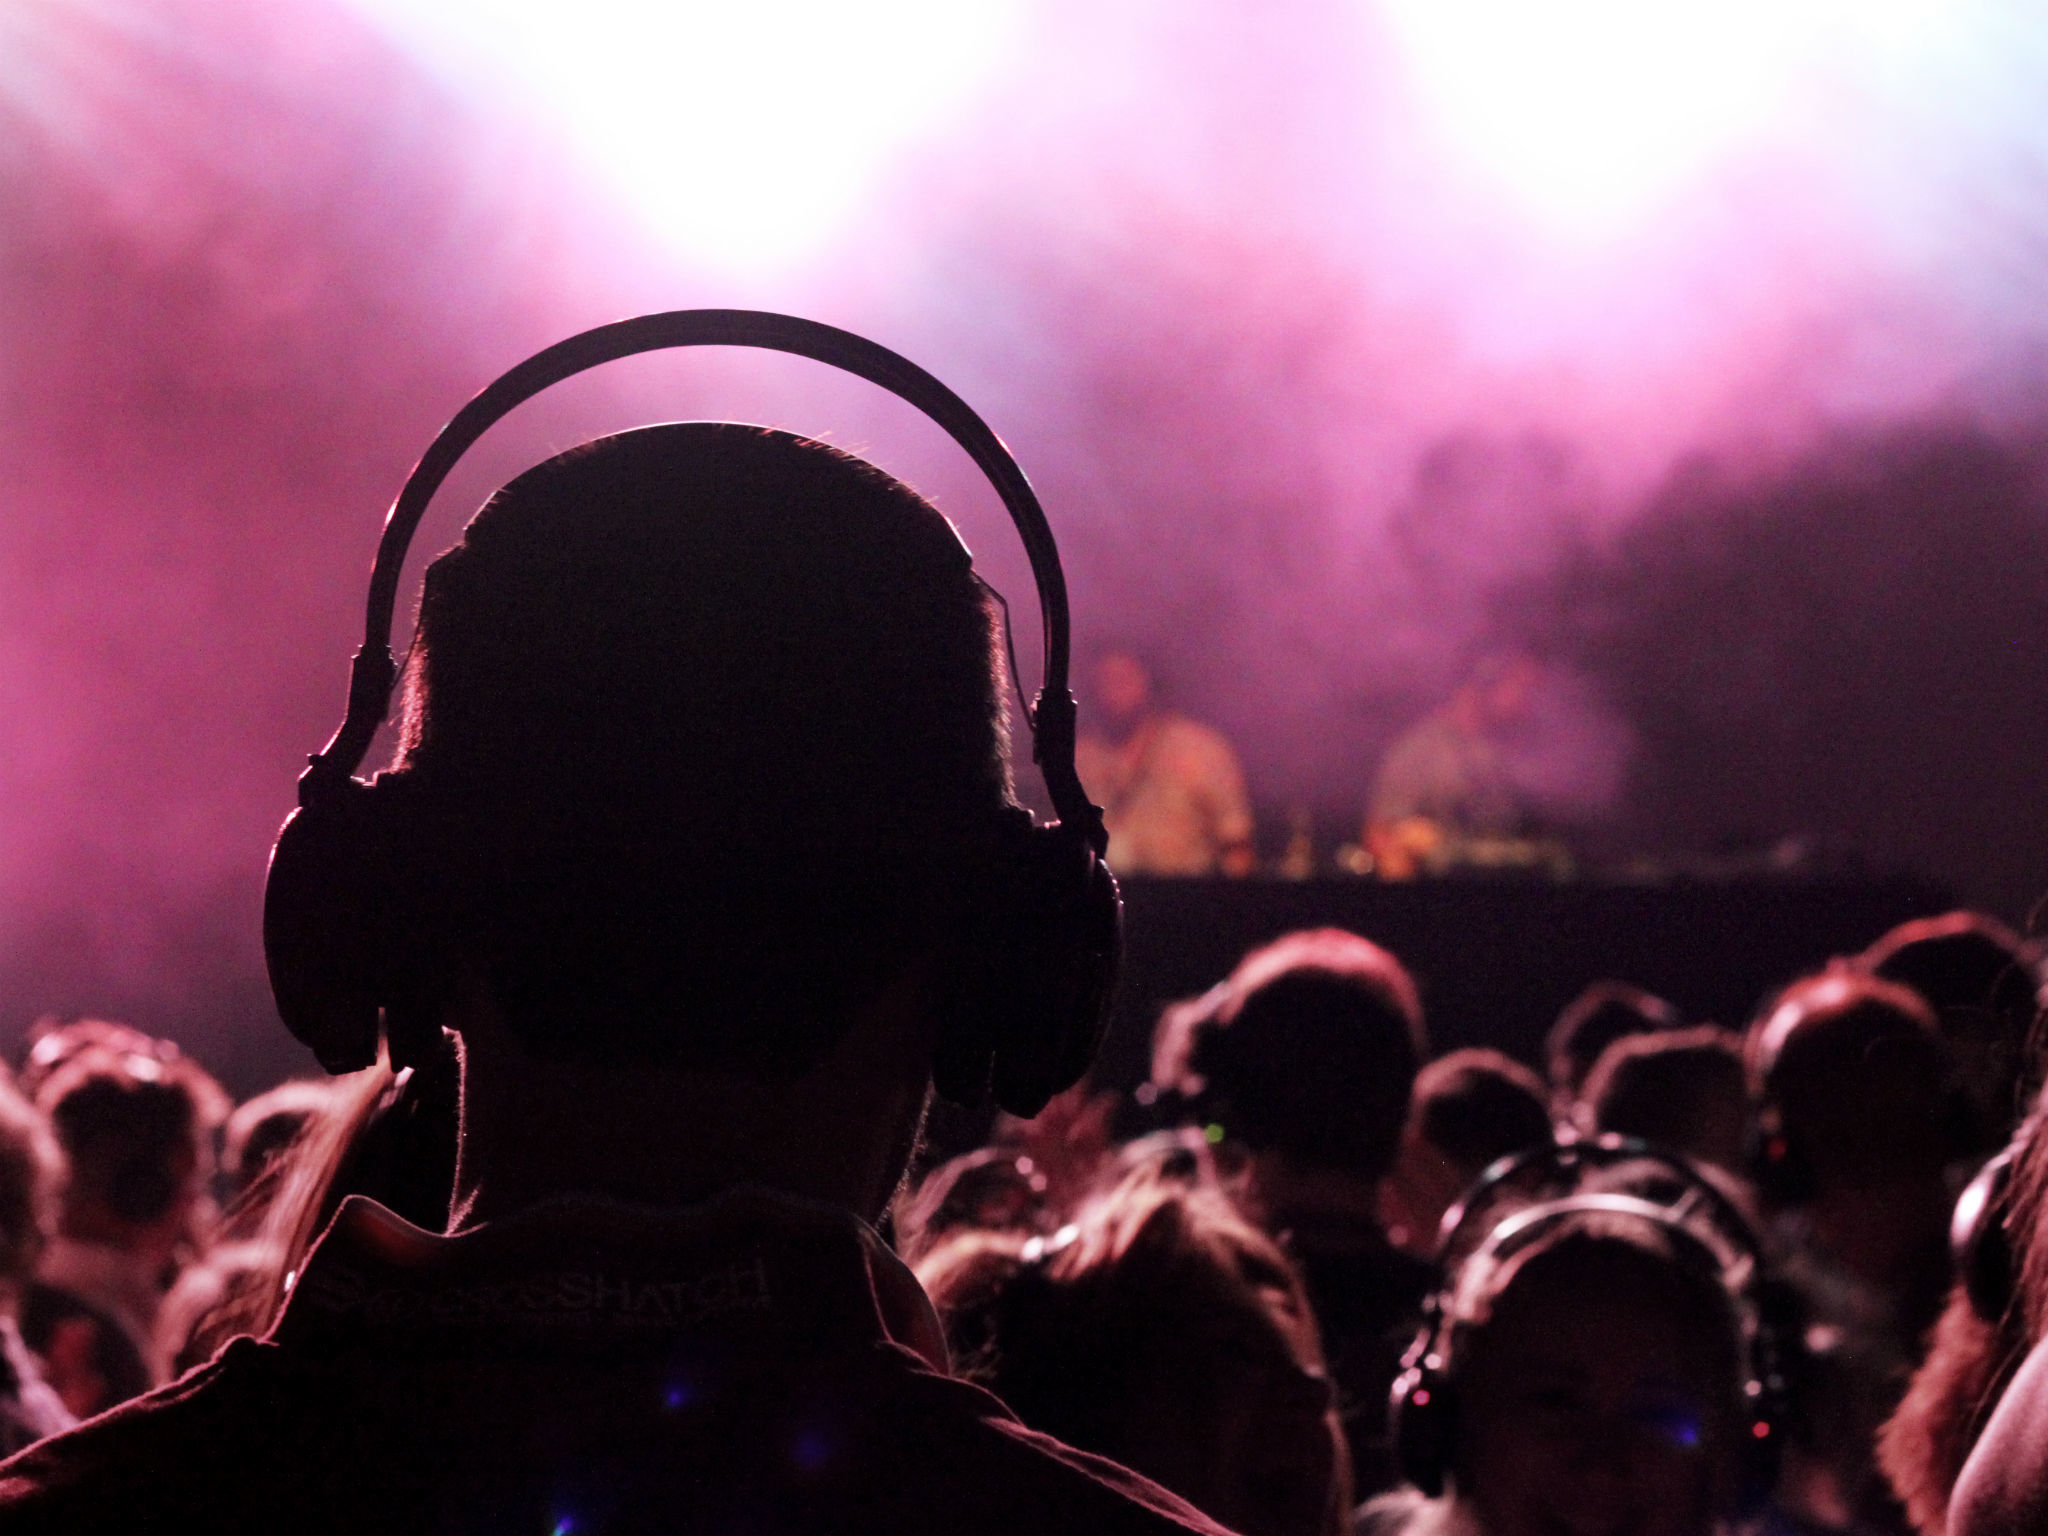 Person with headphones at a nightclub